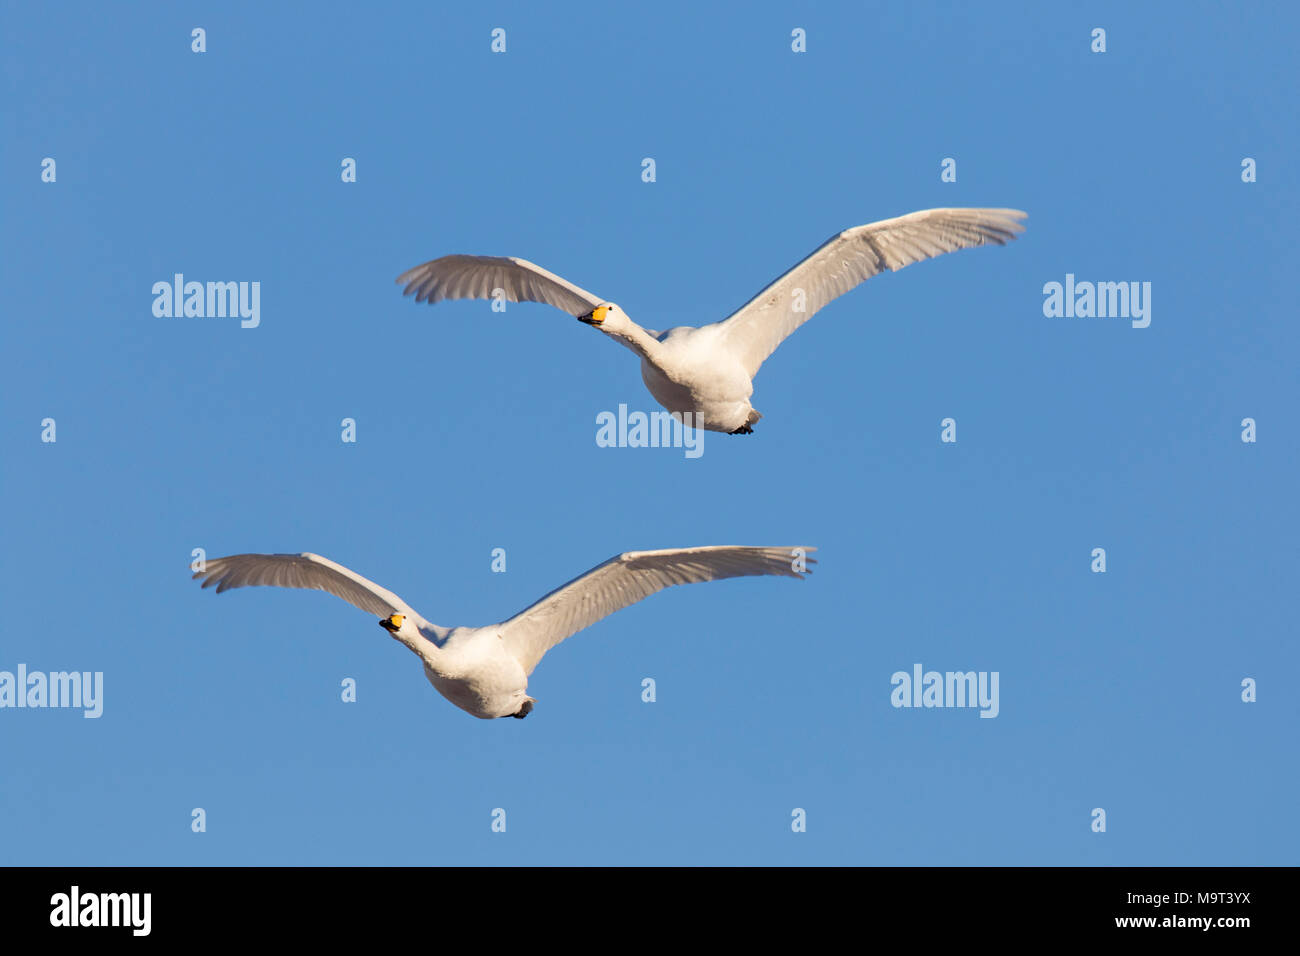 Two whooper swans (Cygnus cygnus) in flight against blue sky - Stock Image